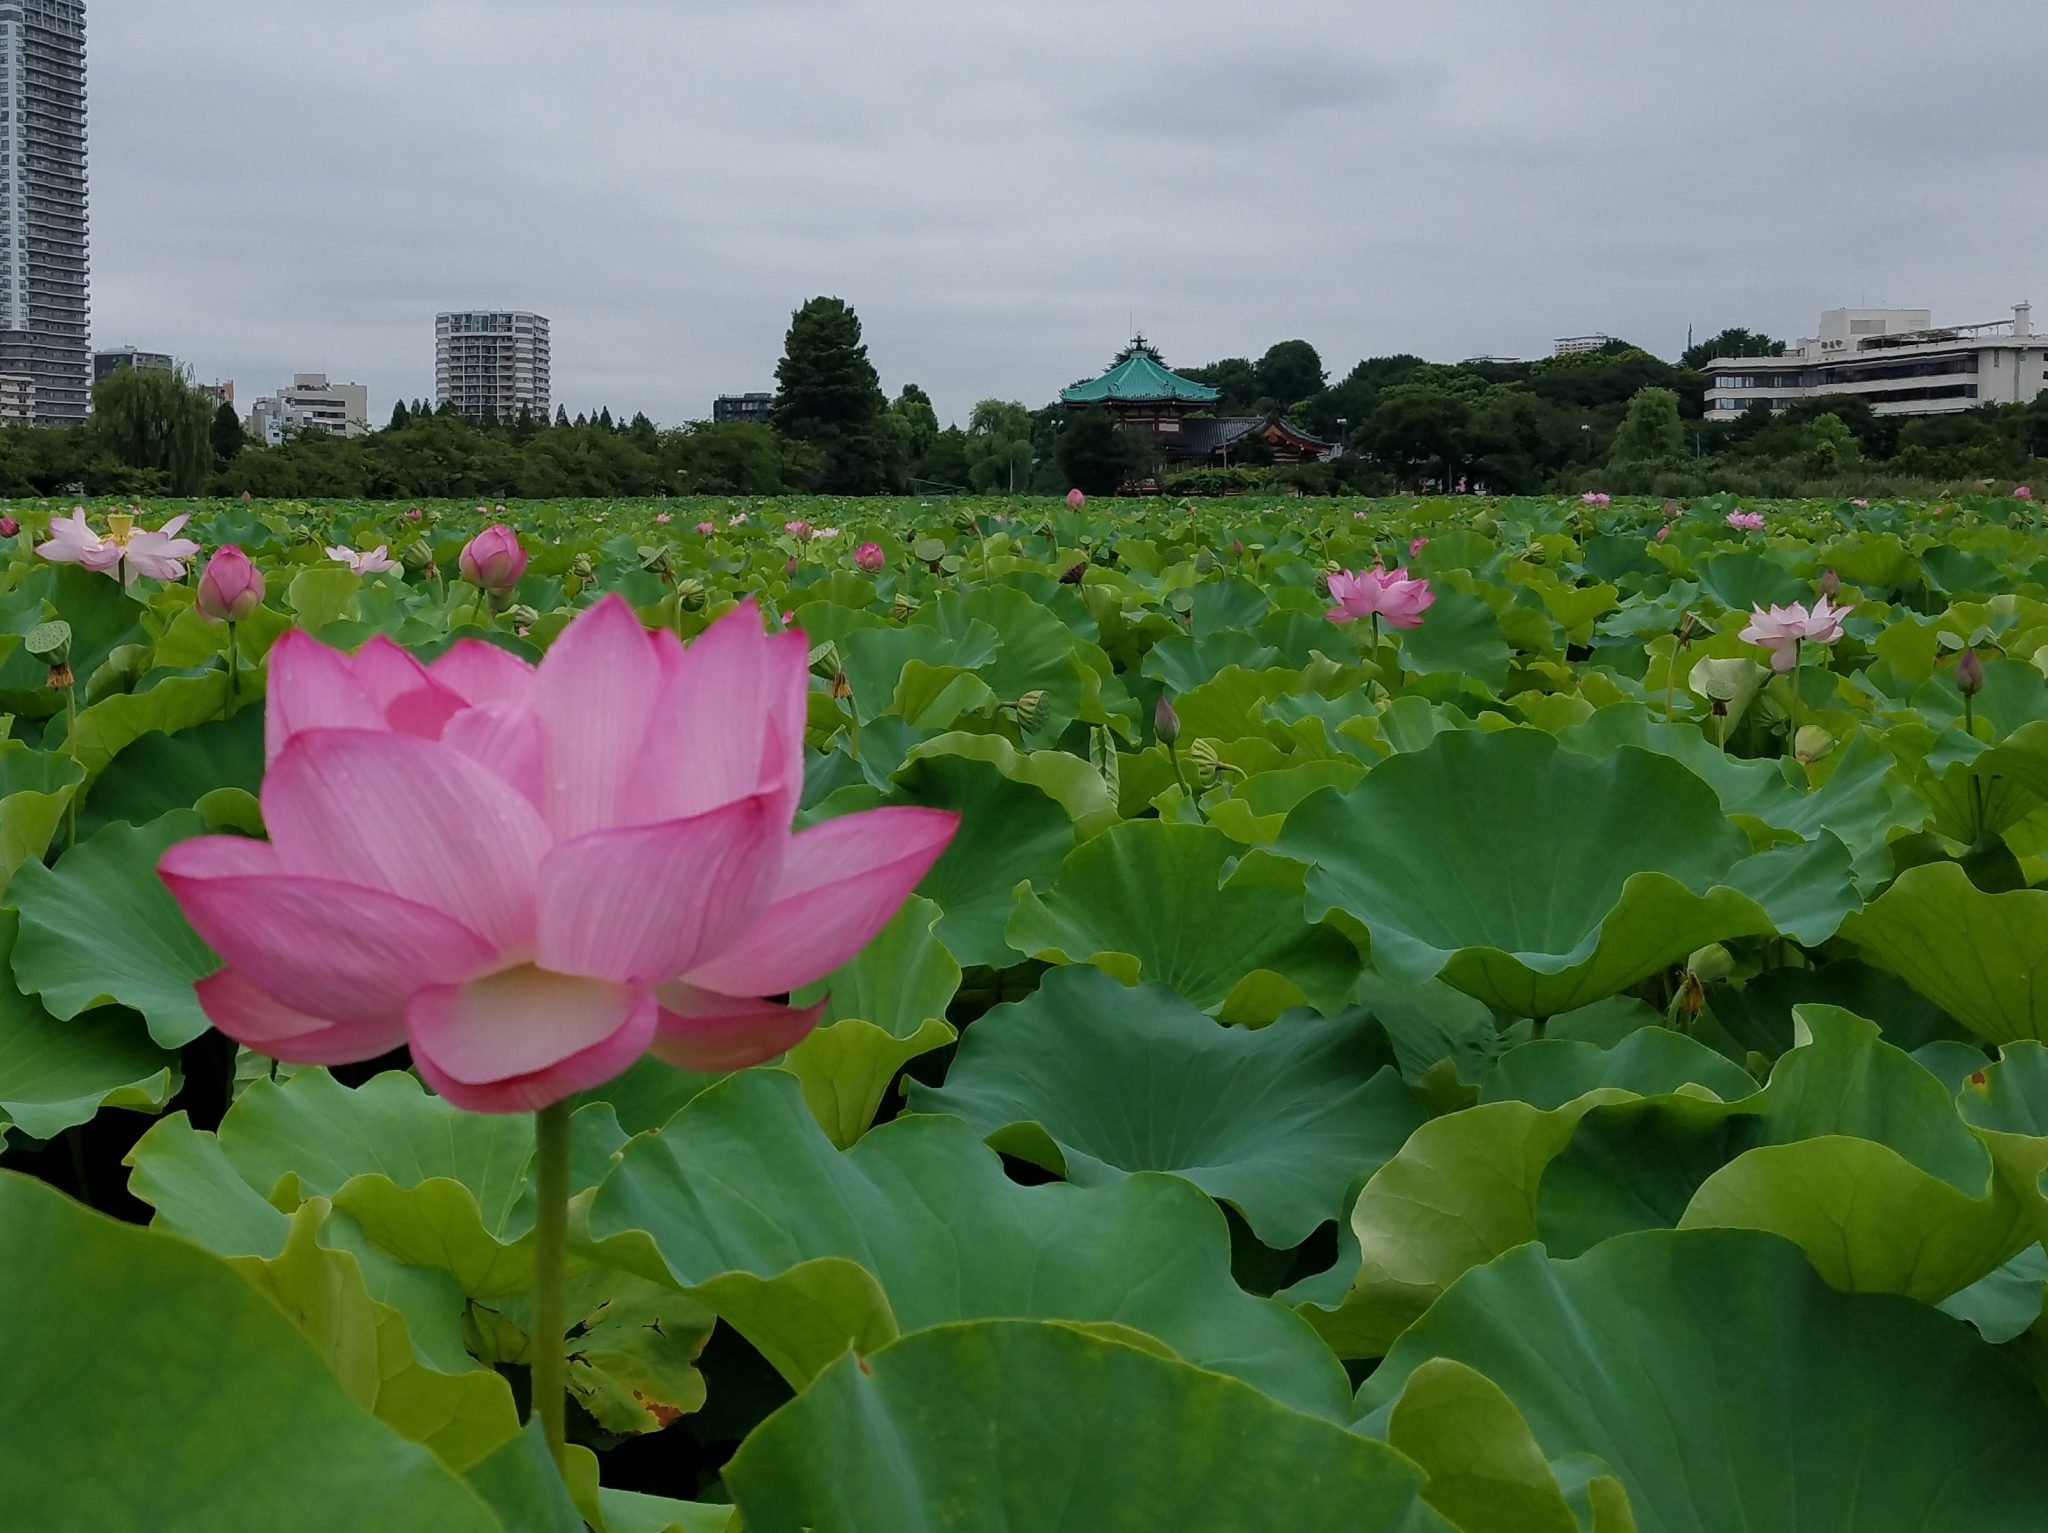 Shinobazu Pond in Ueno Park with Lotus Blooming seen on a Maction Planet Tokyo Private Tour